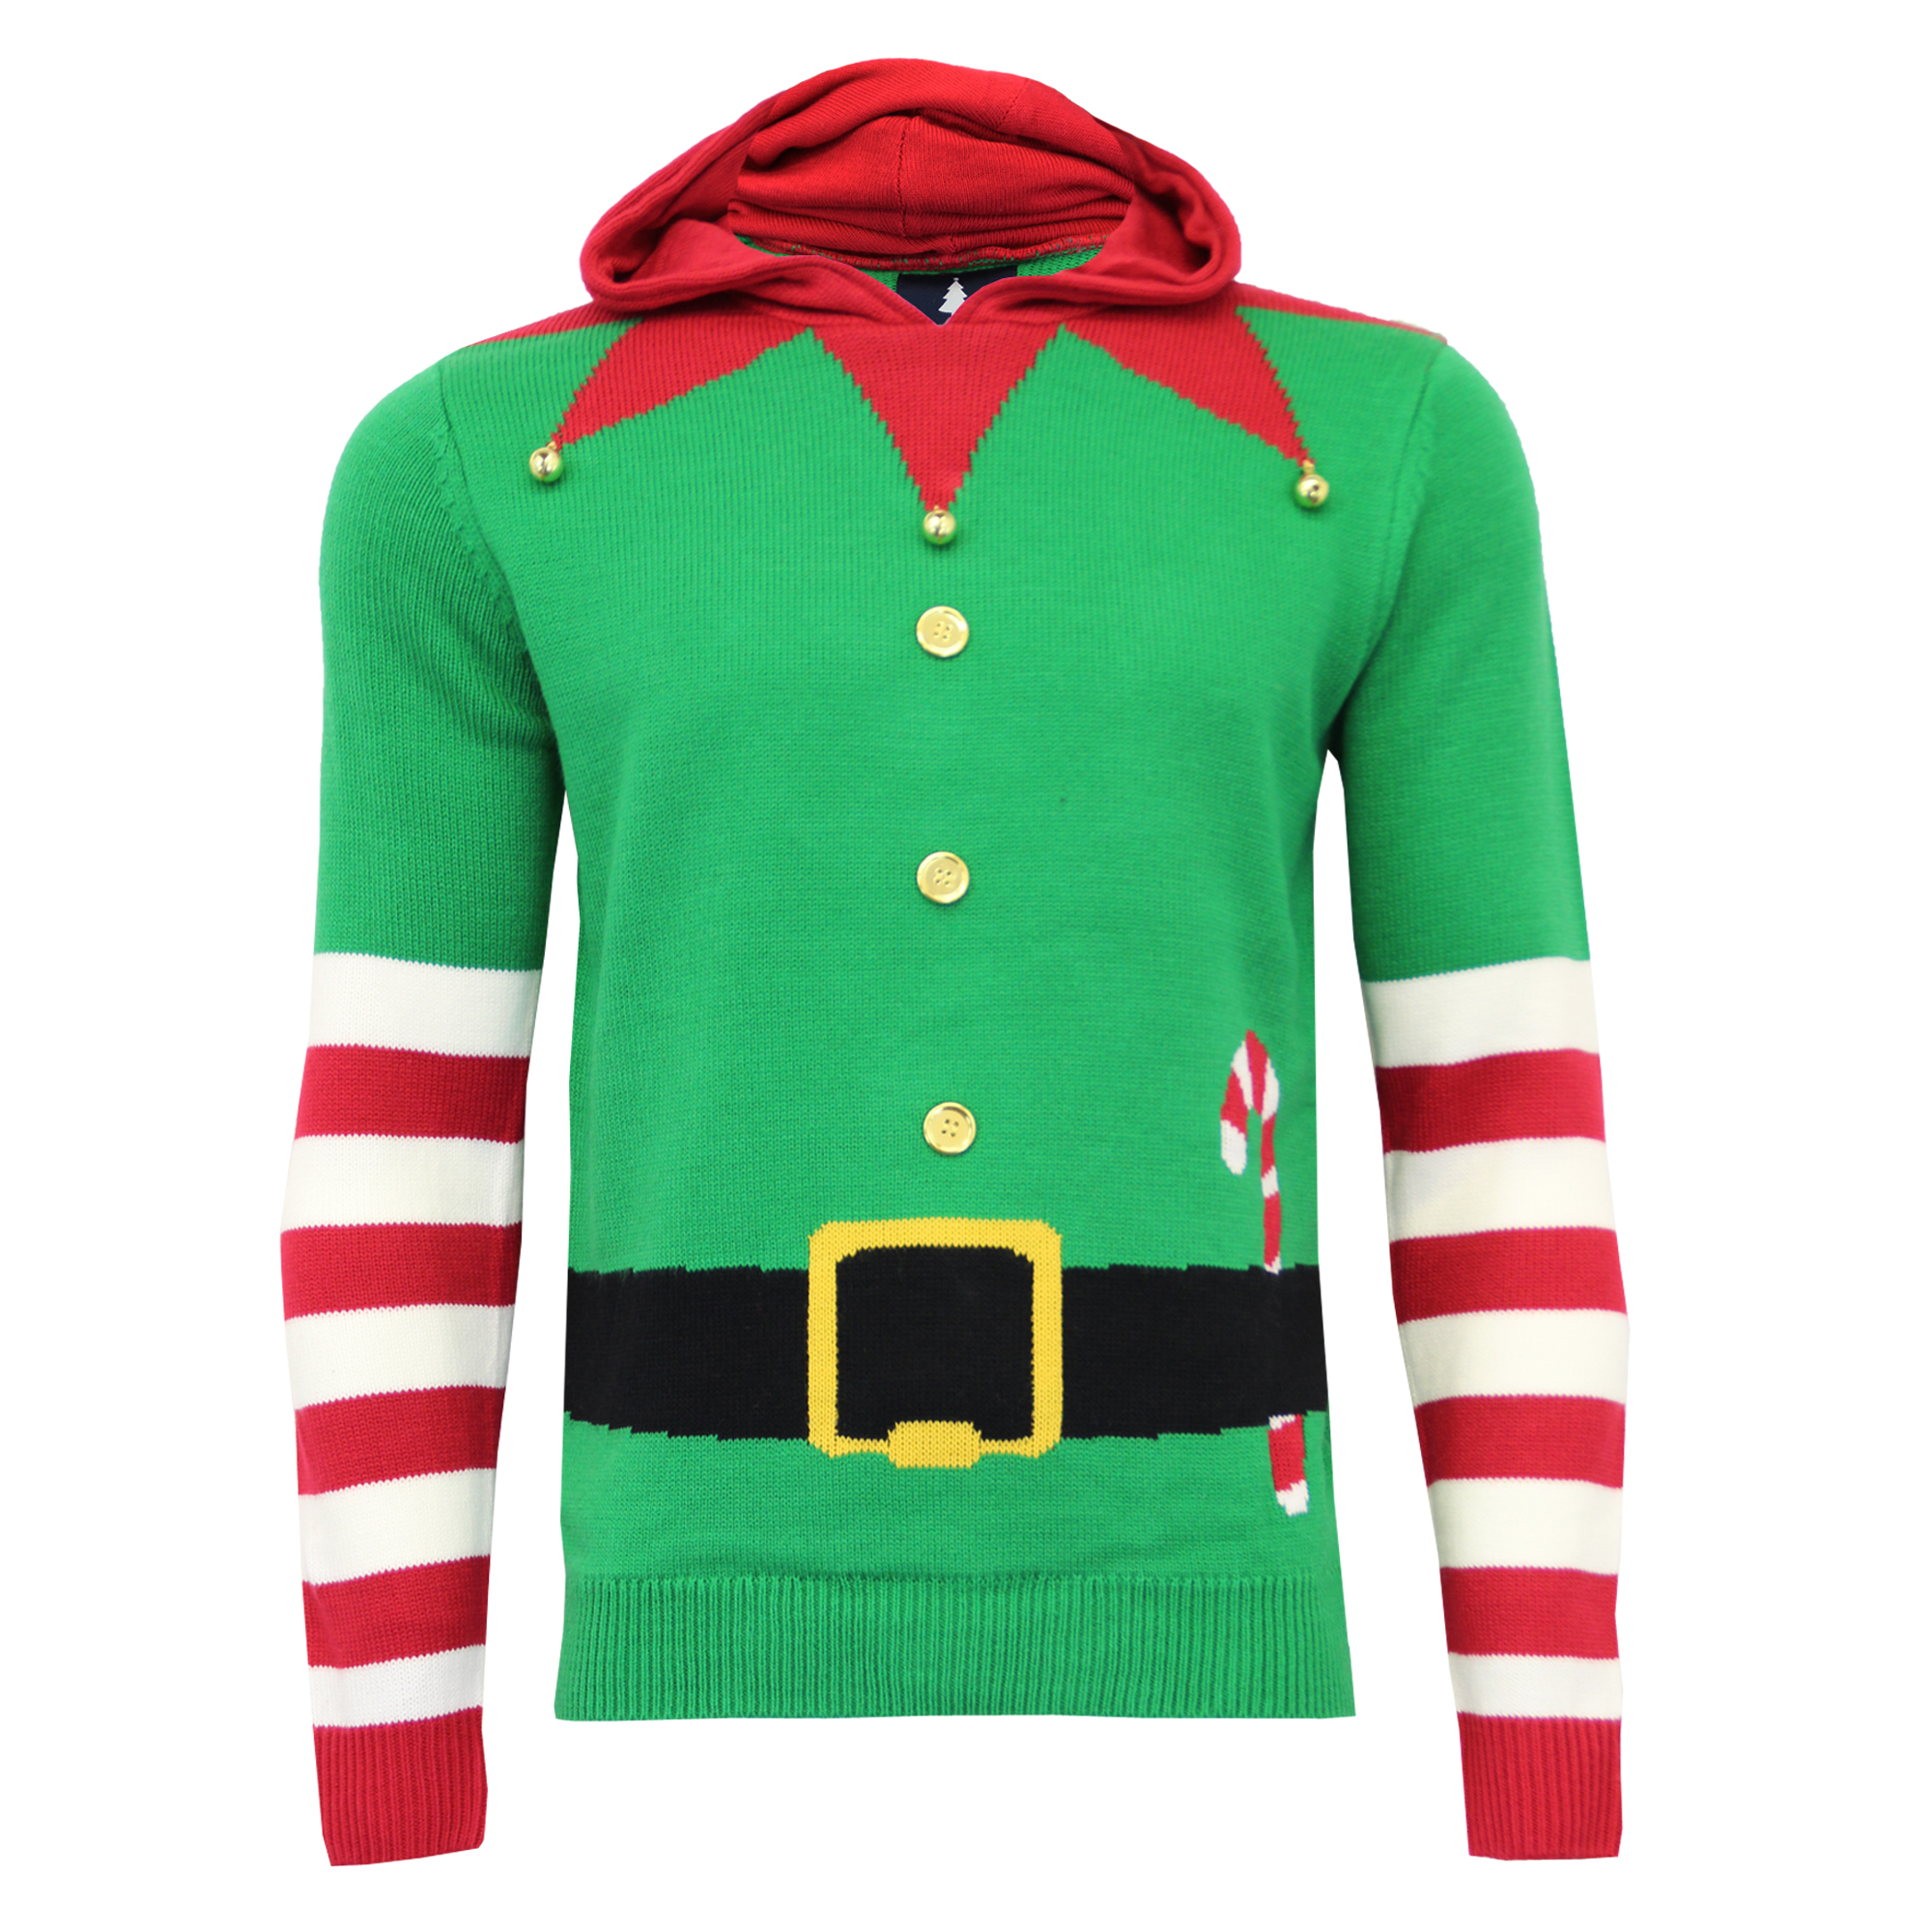 cac283889 Mens Christmas Jumper Threadbare Xmas Knitted Novelty 3D Elf Jingle ...